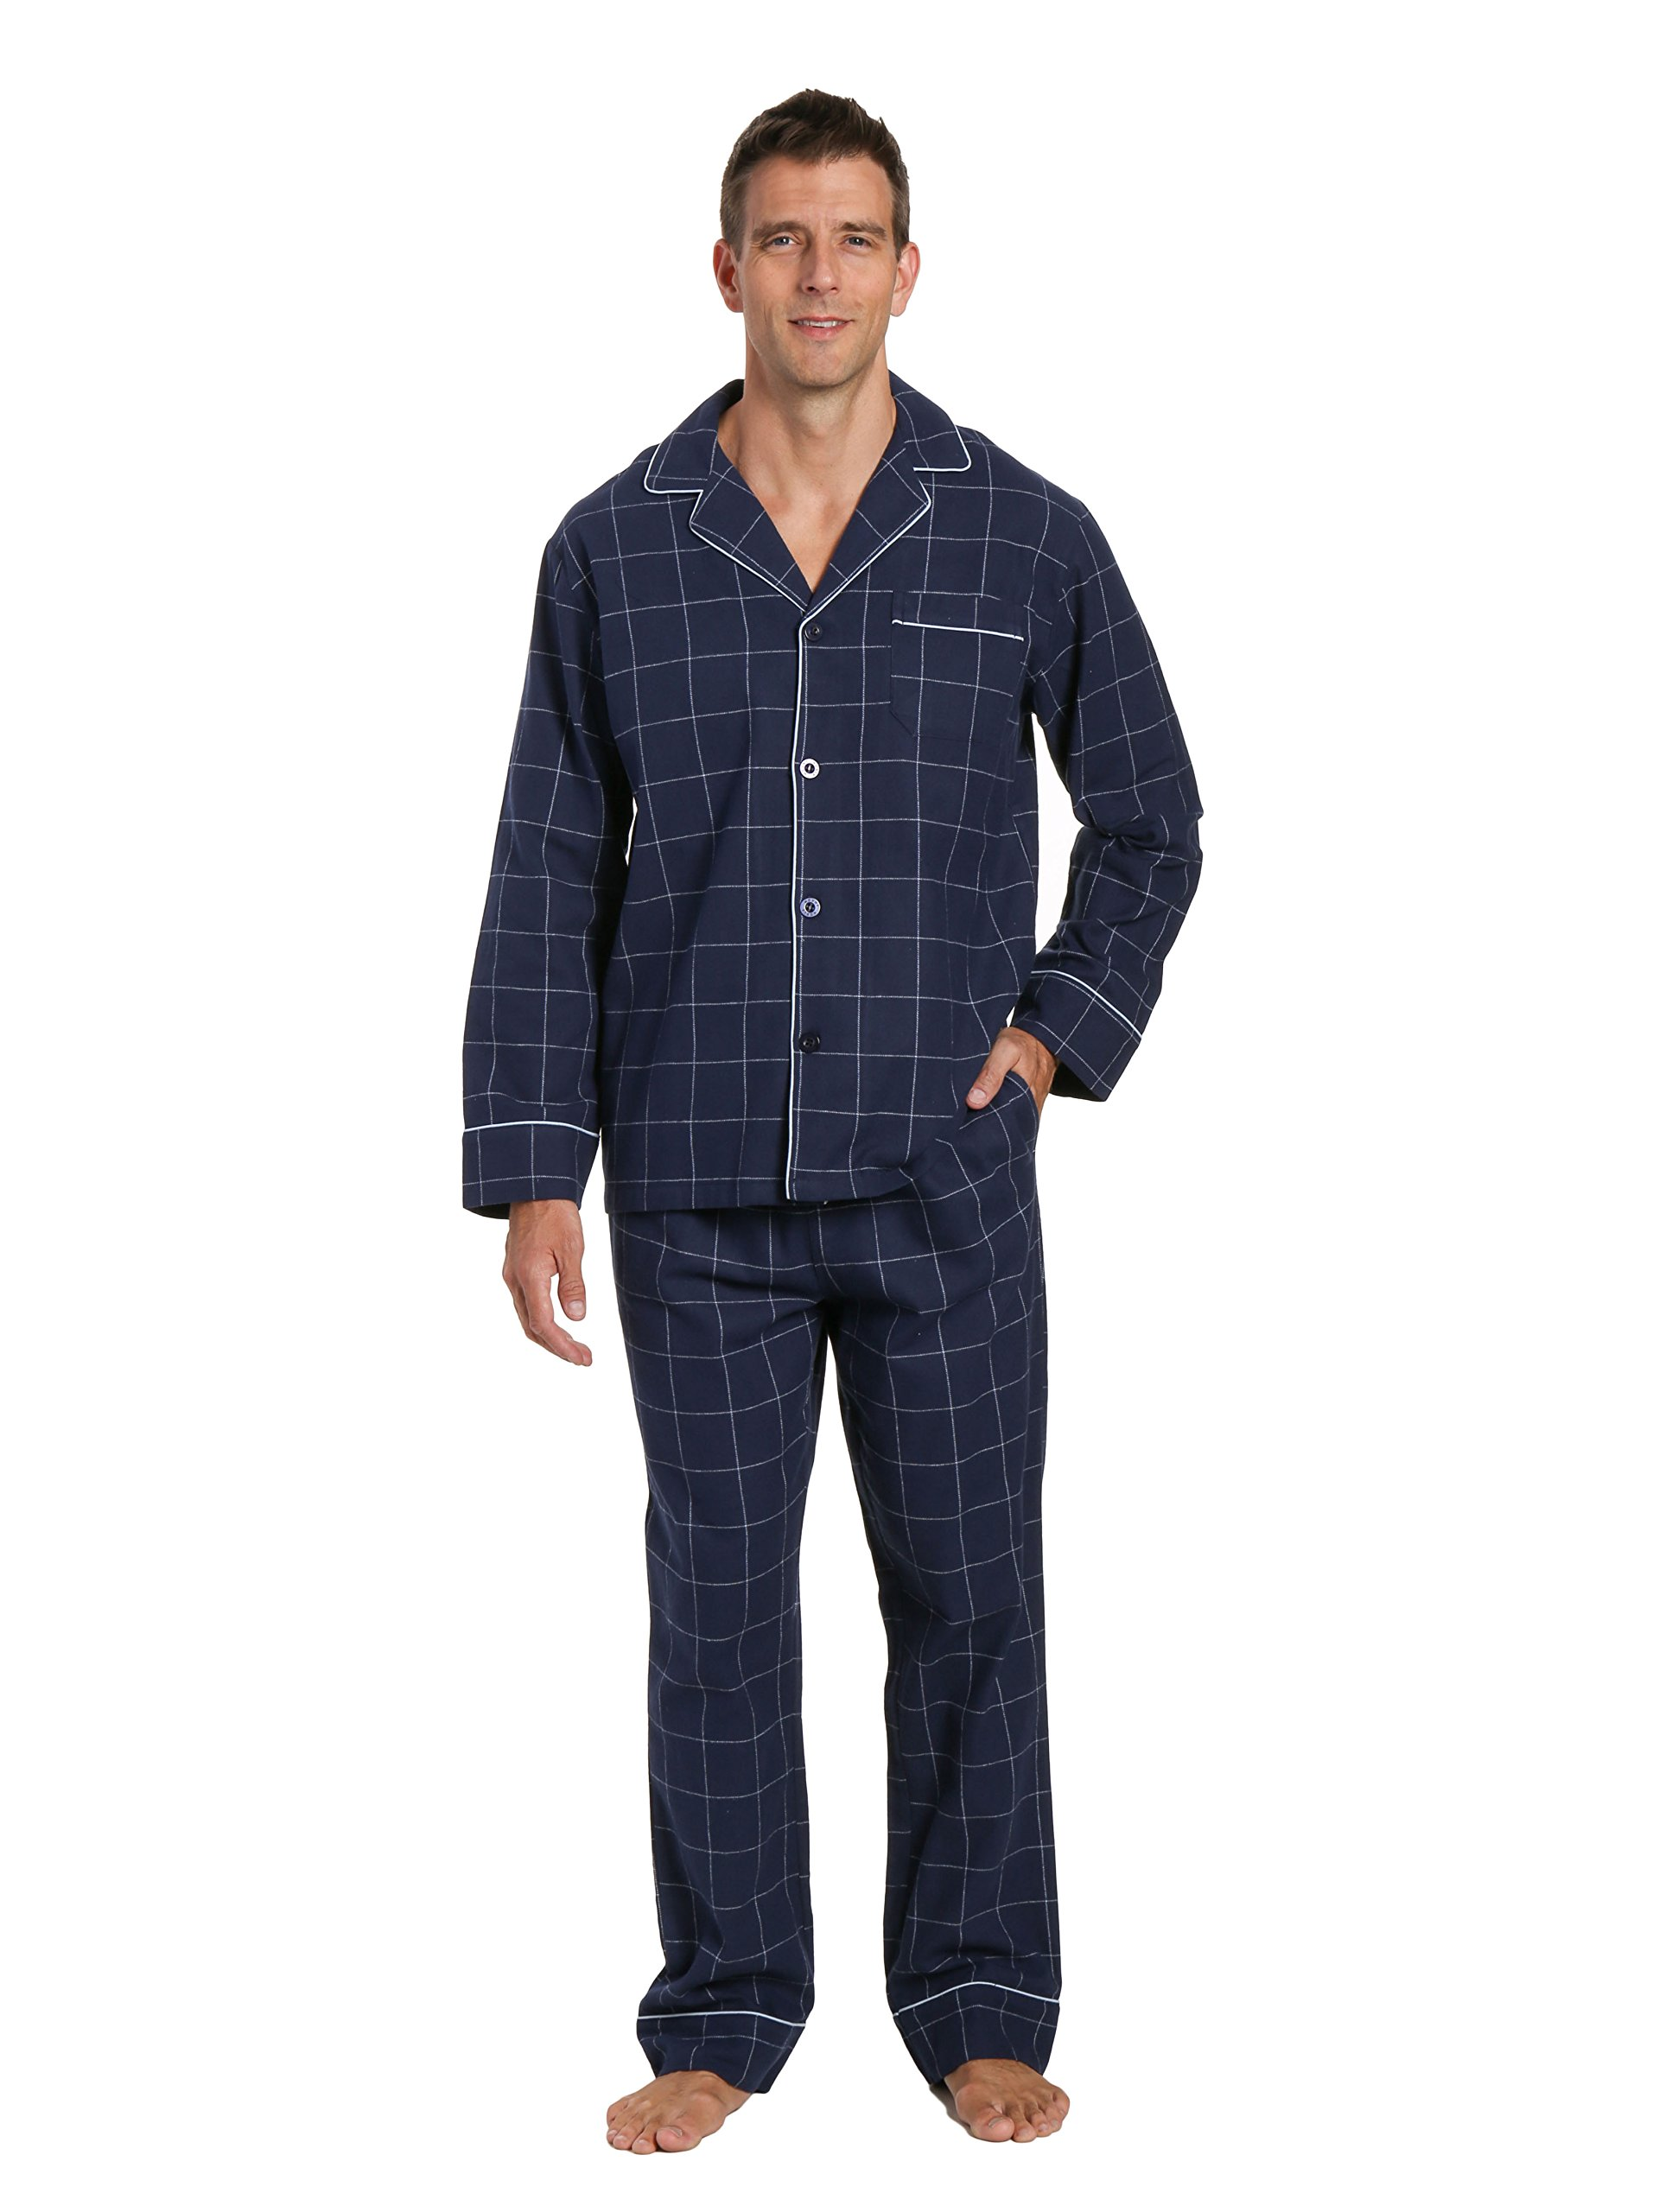 Men's Flannel Pajama Set - Windowpane Checks - Navy - Large